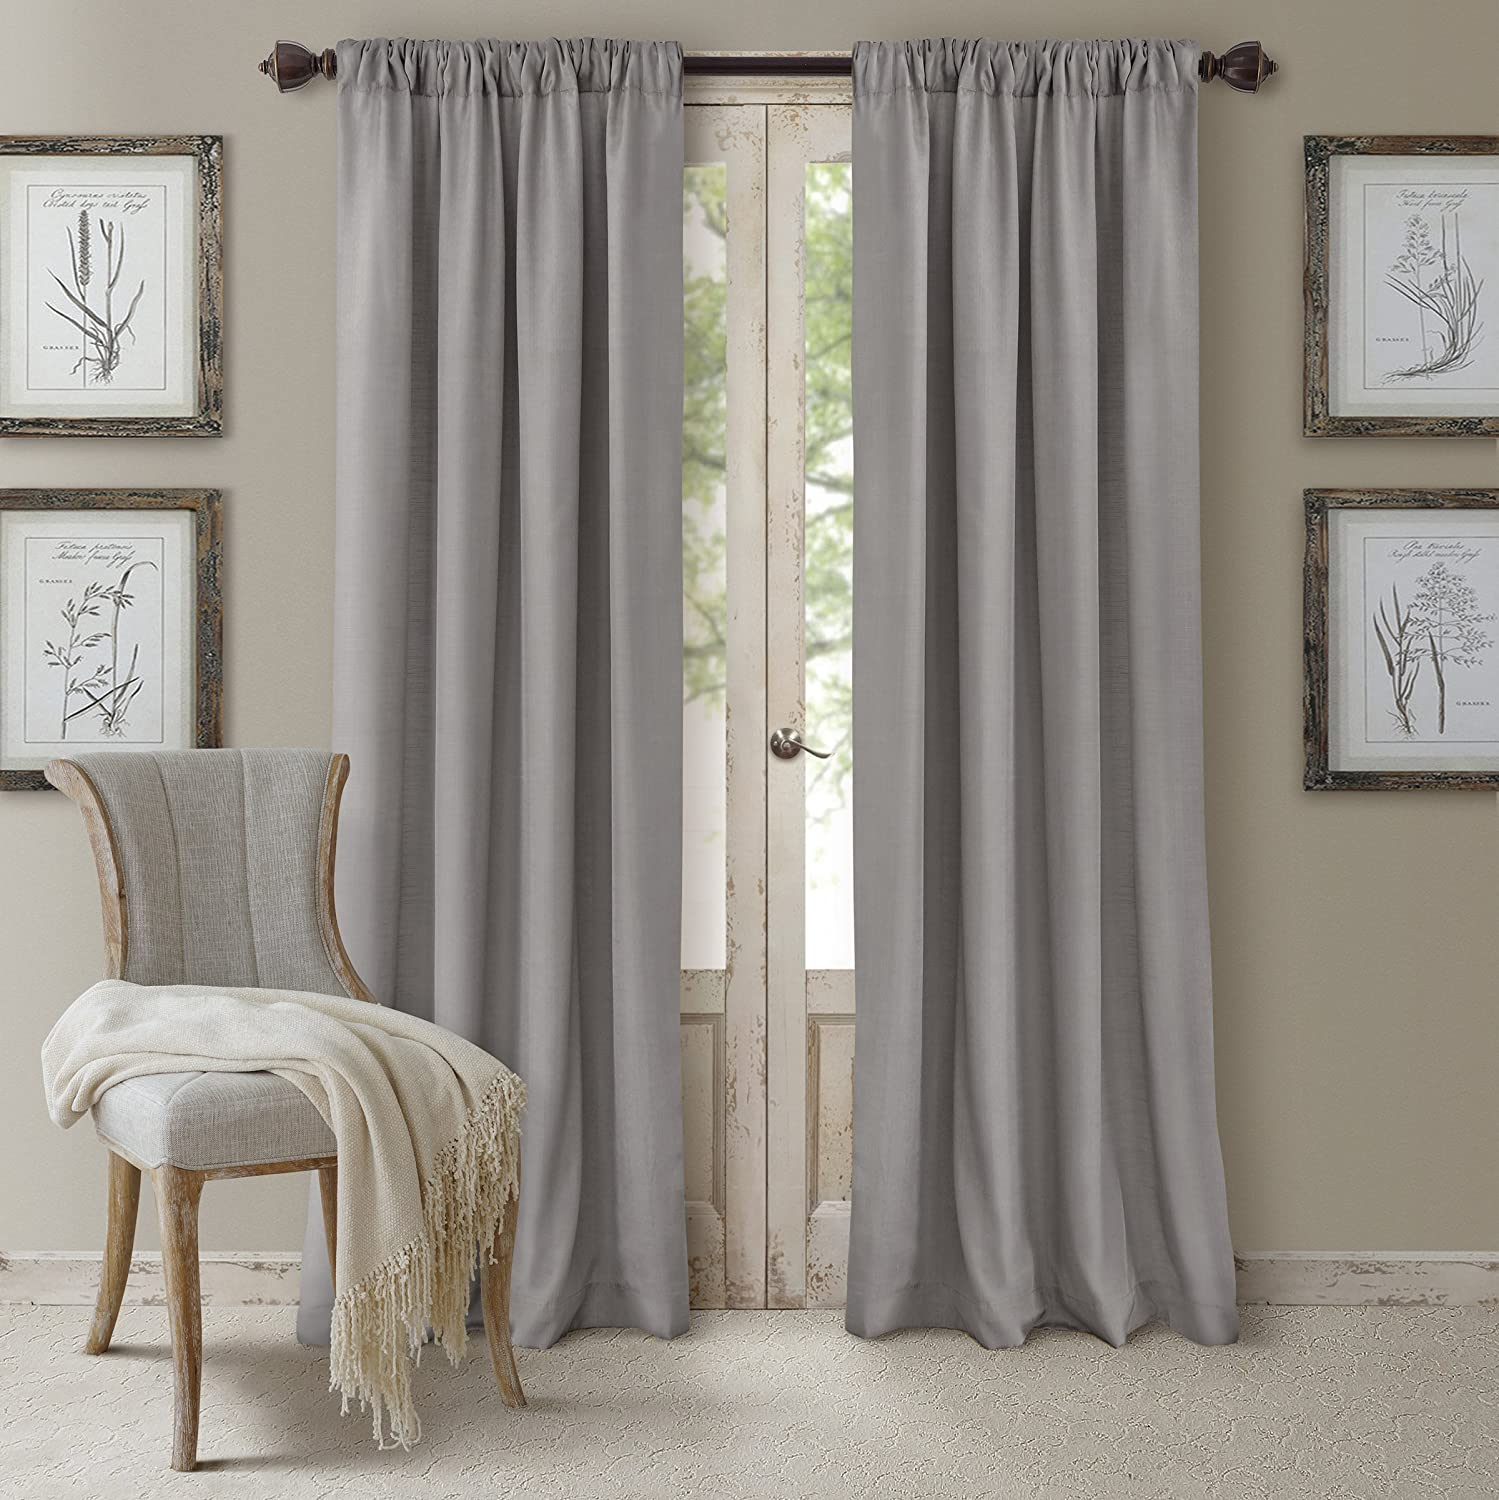 "Elrene Home Fashions 26865721836 3-in-1 Blackout Energy Efficient Lined Rod Pocket Window Curtain Drape Panel, 52"" x 84"", Silver"